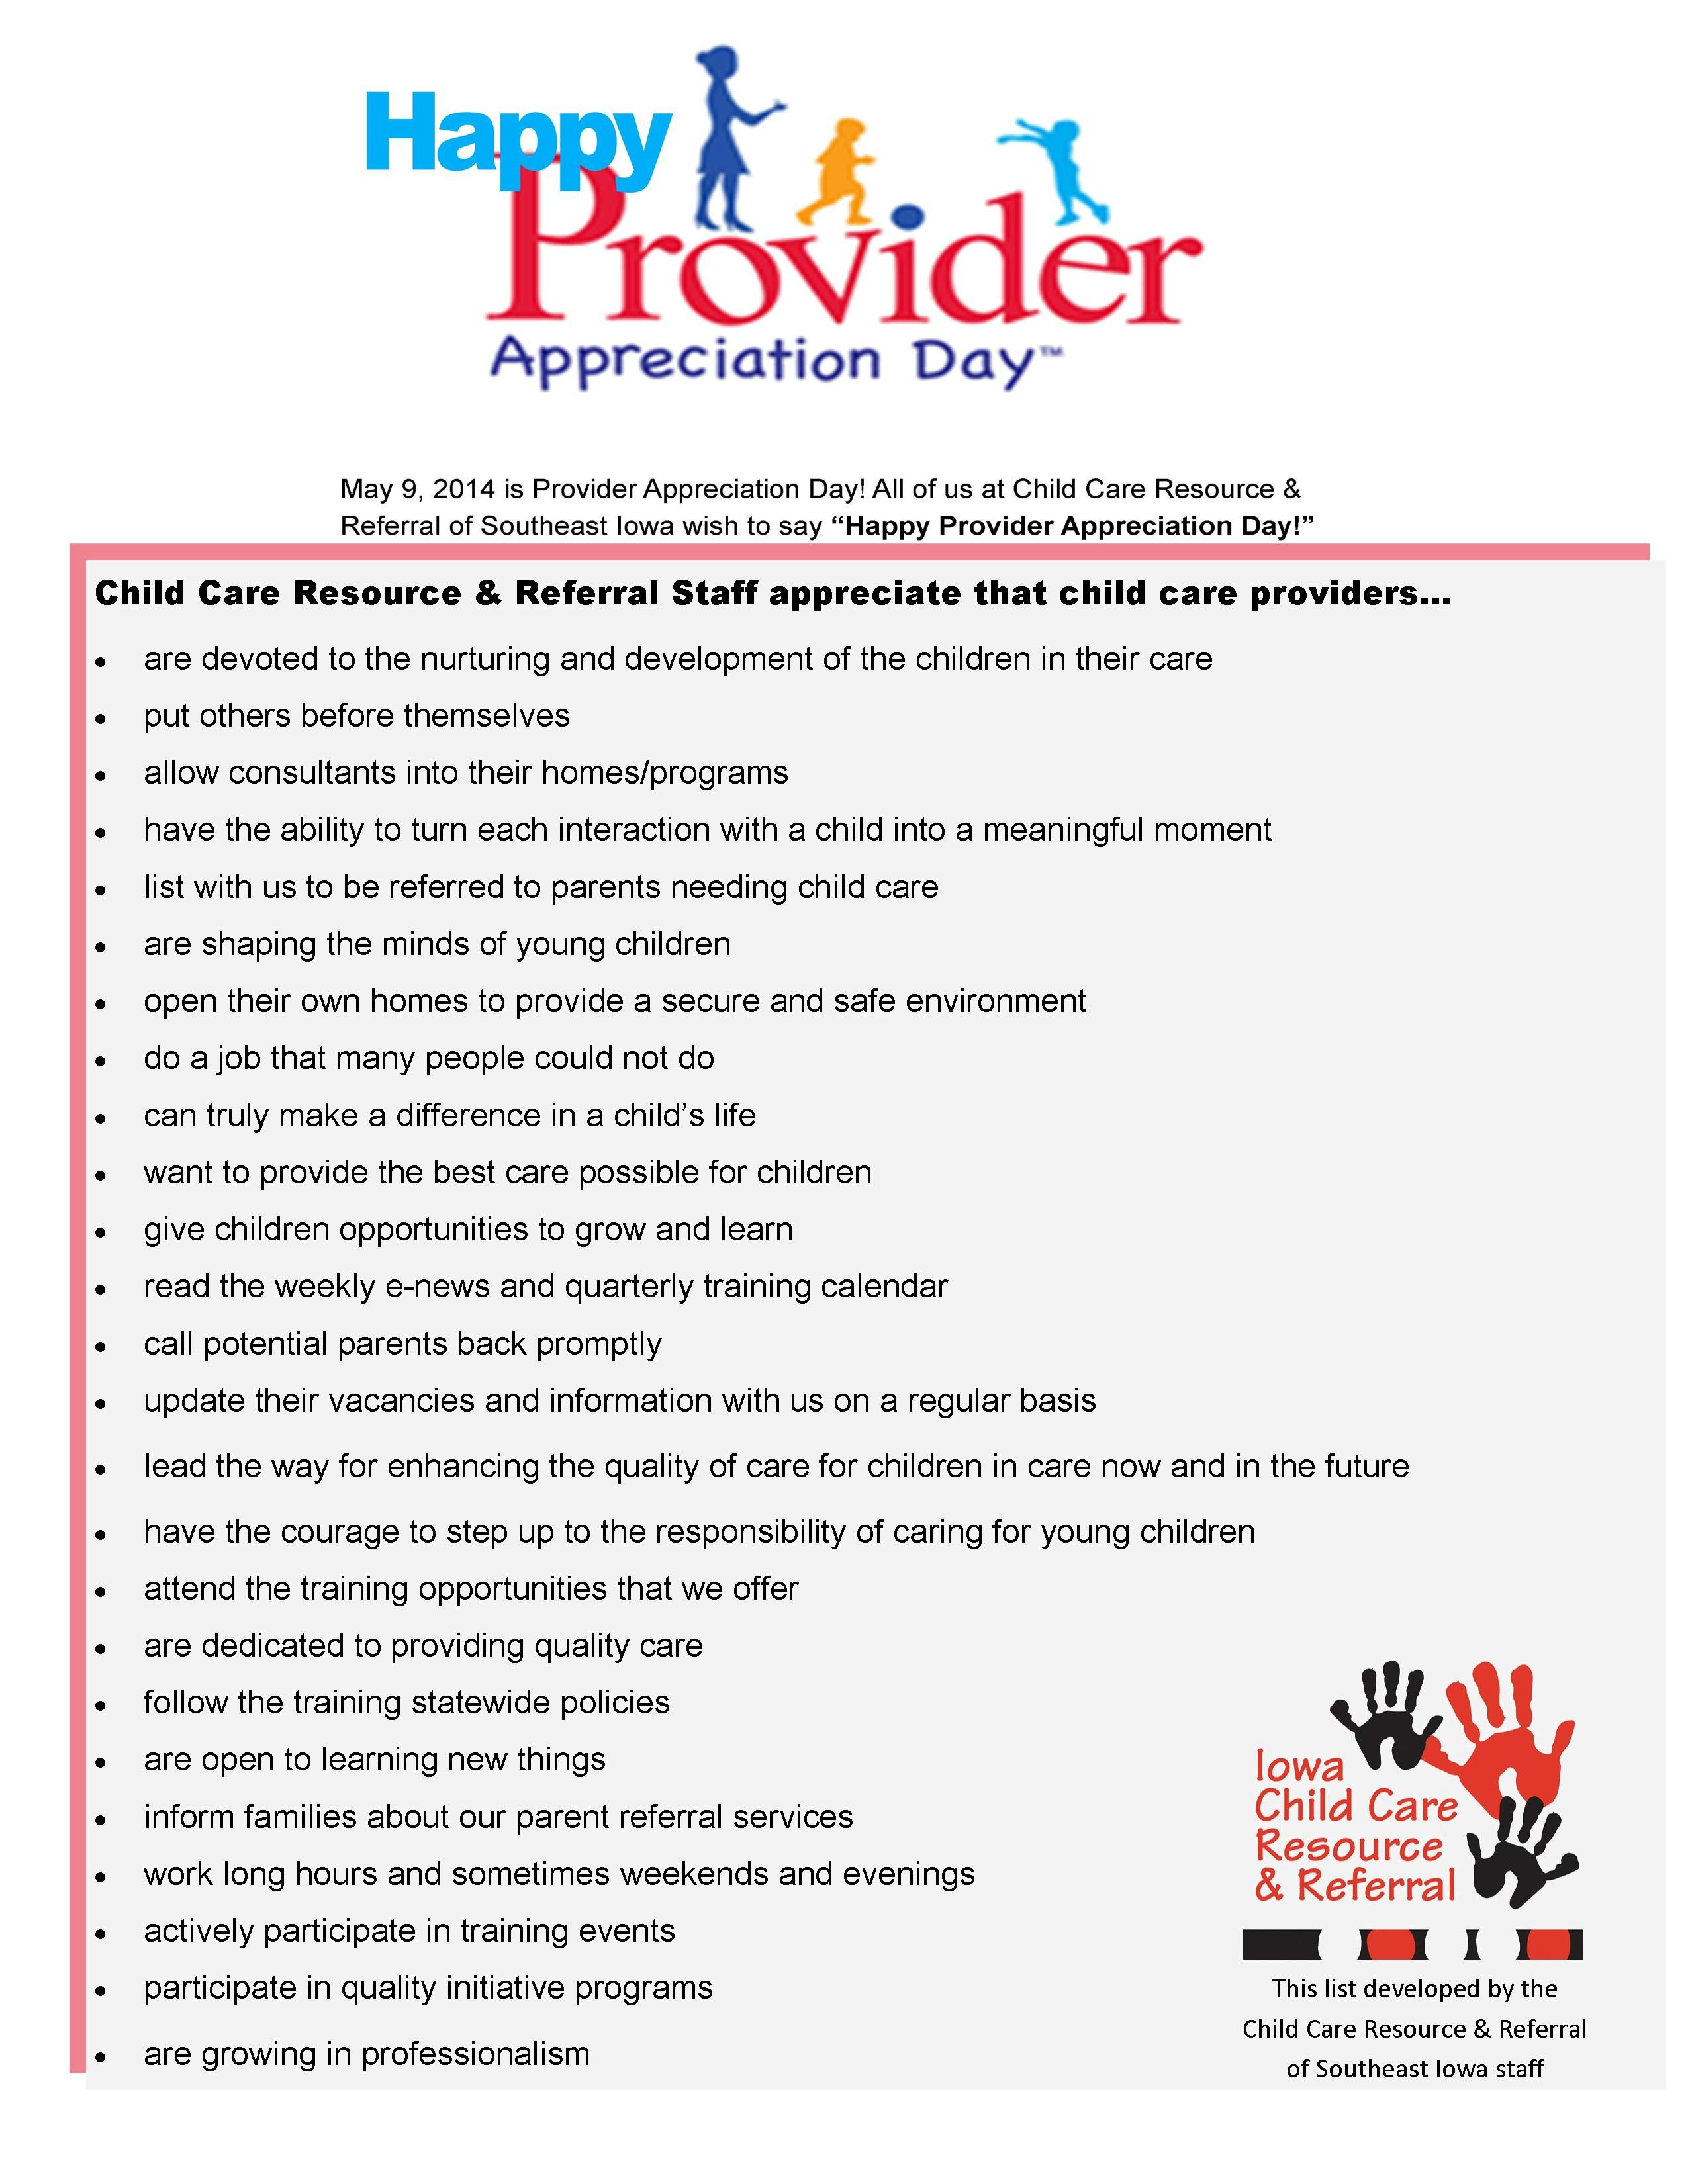 We appreciated our child care providers because they